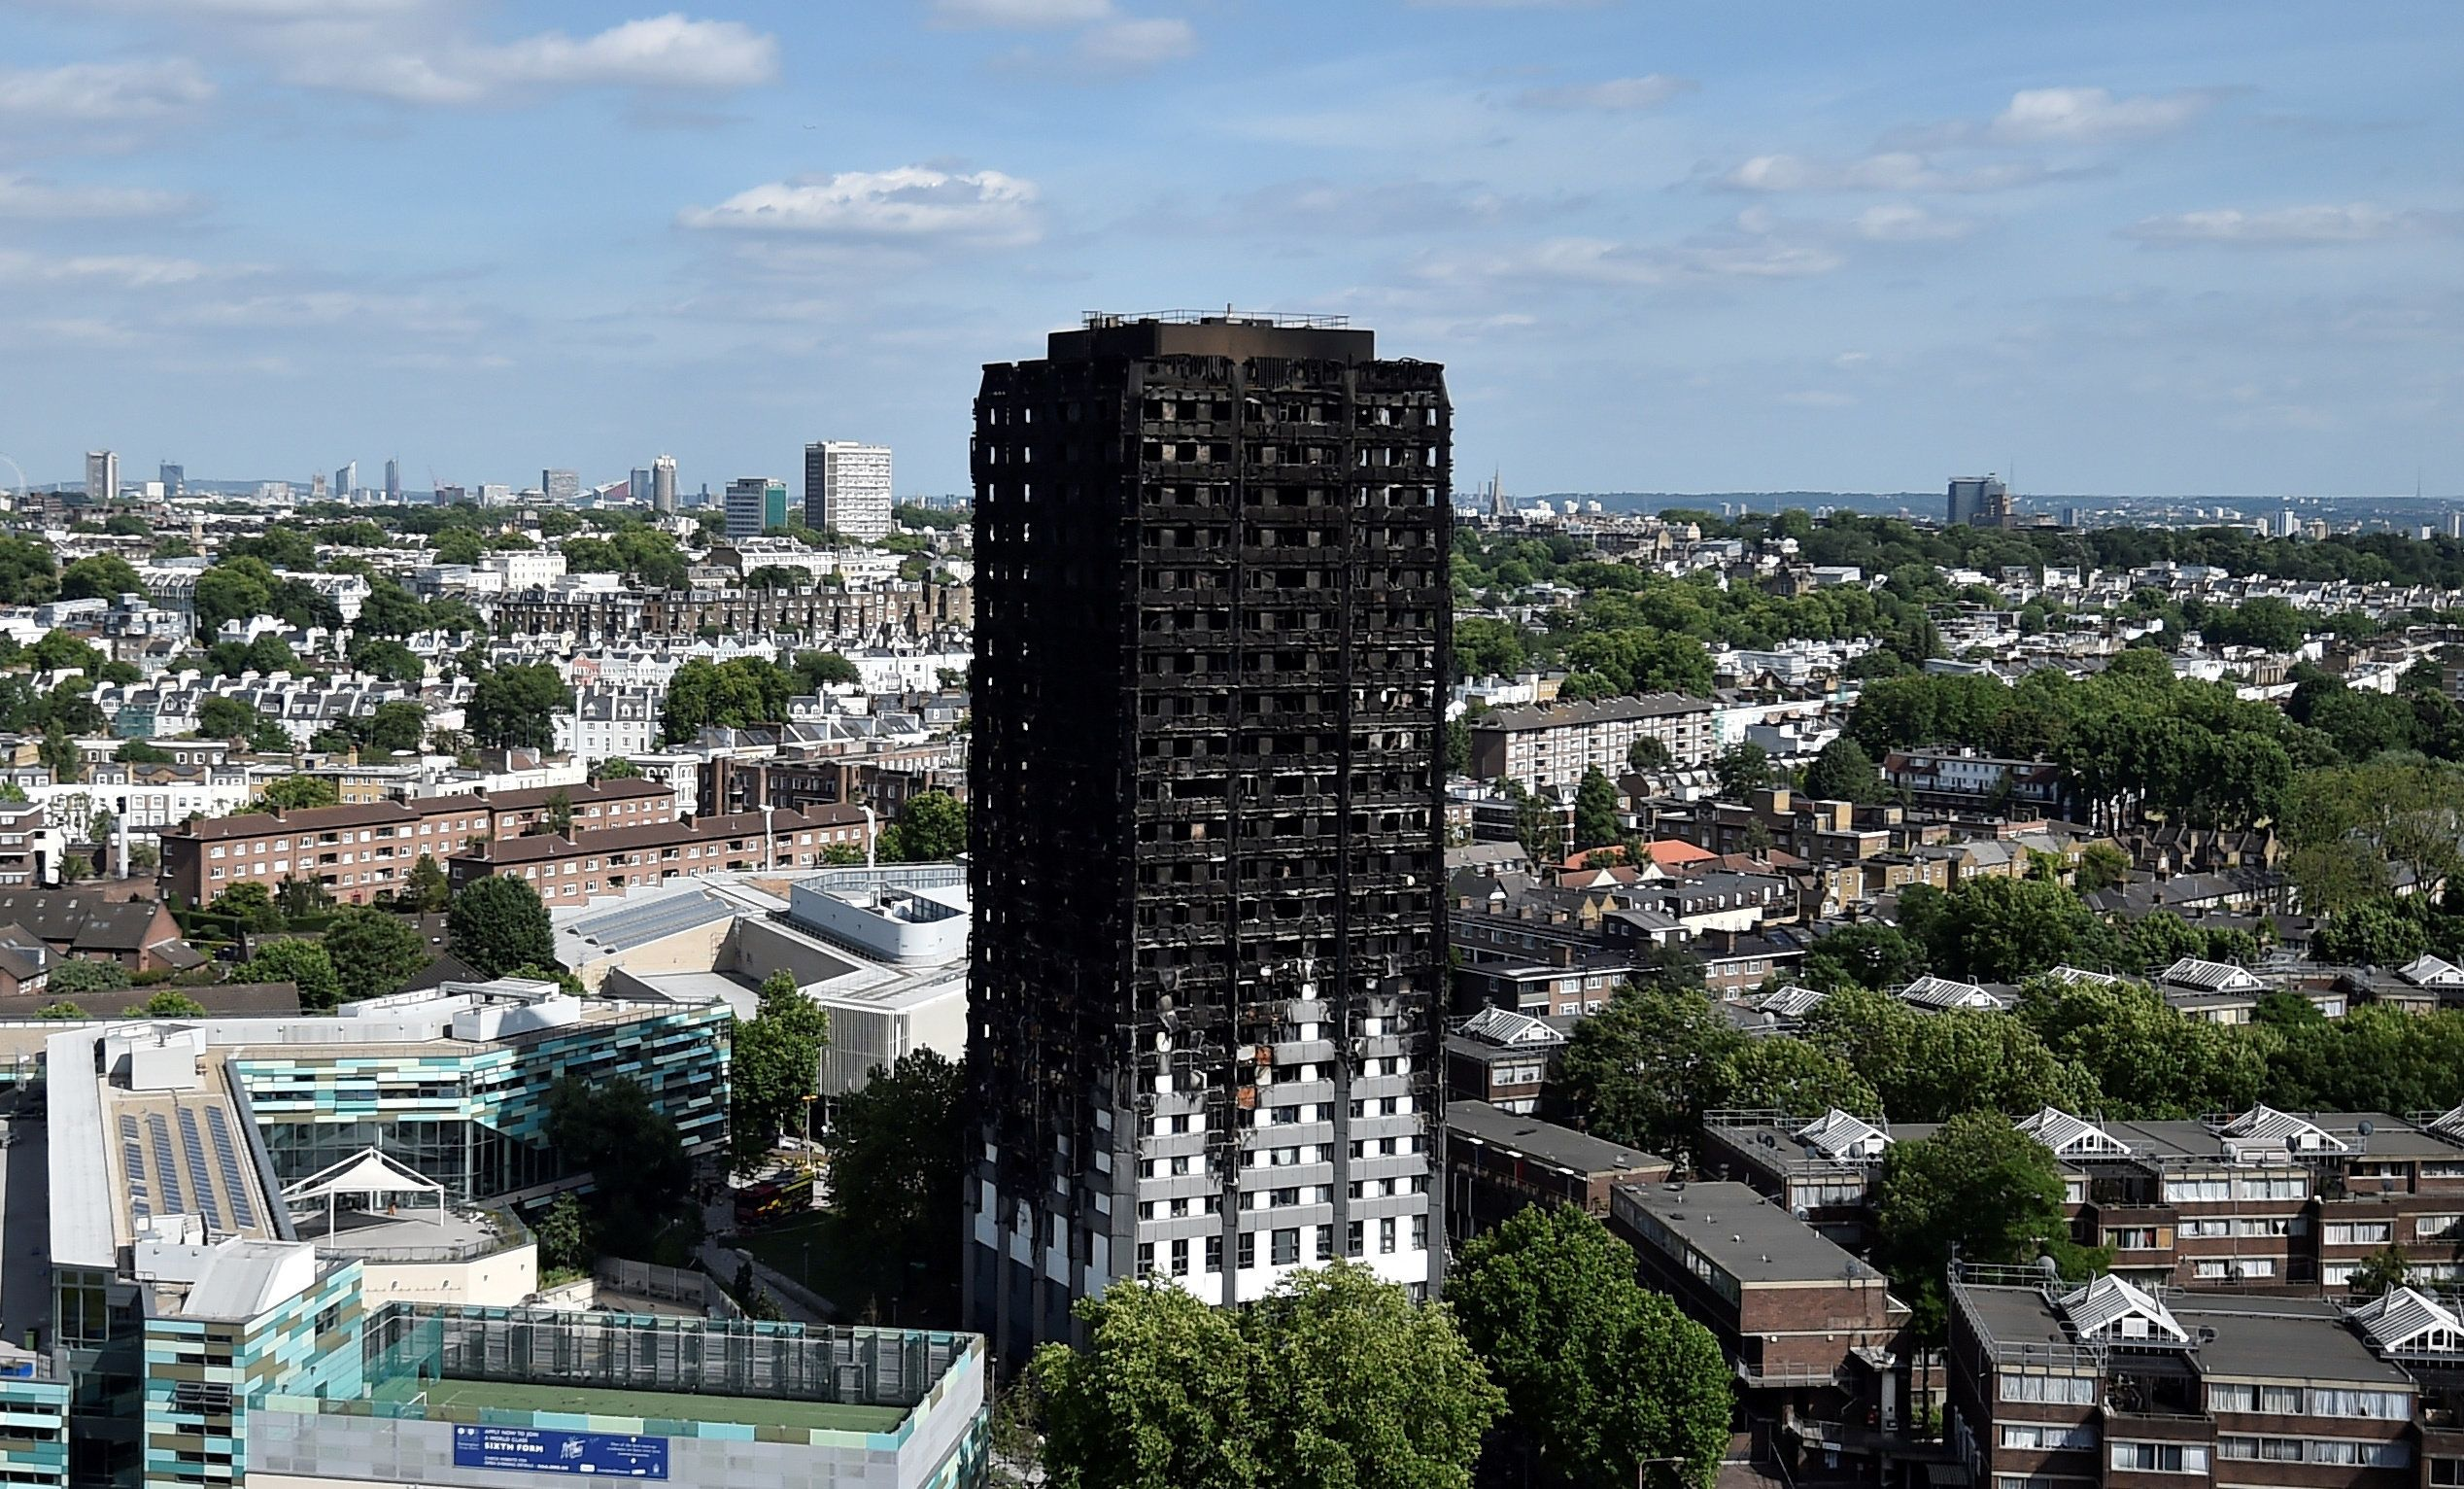 Grenfell Tower Residents To Be Rehoused In £1.6M Luxury Kensington Flats